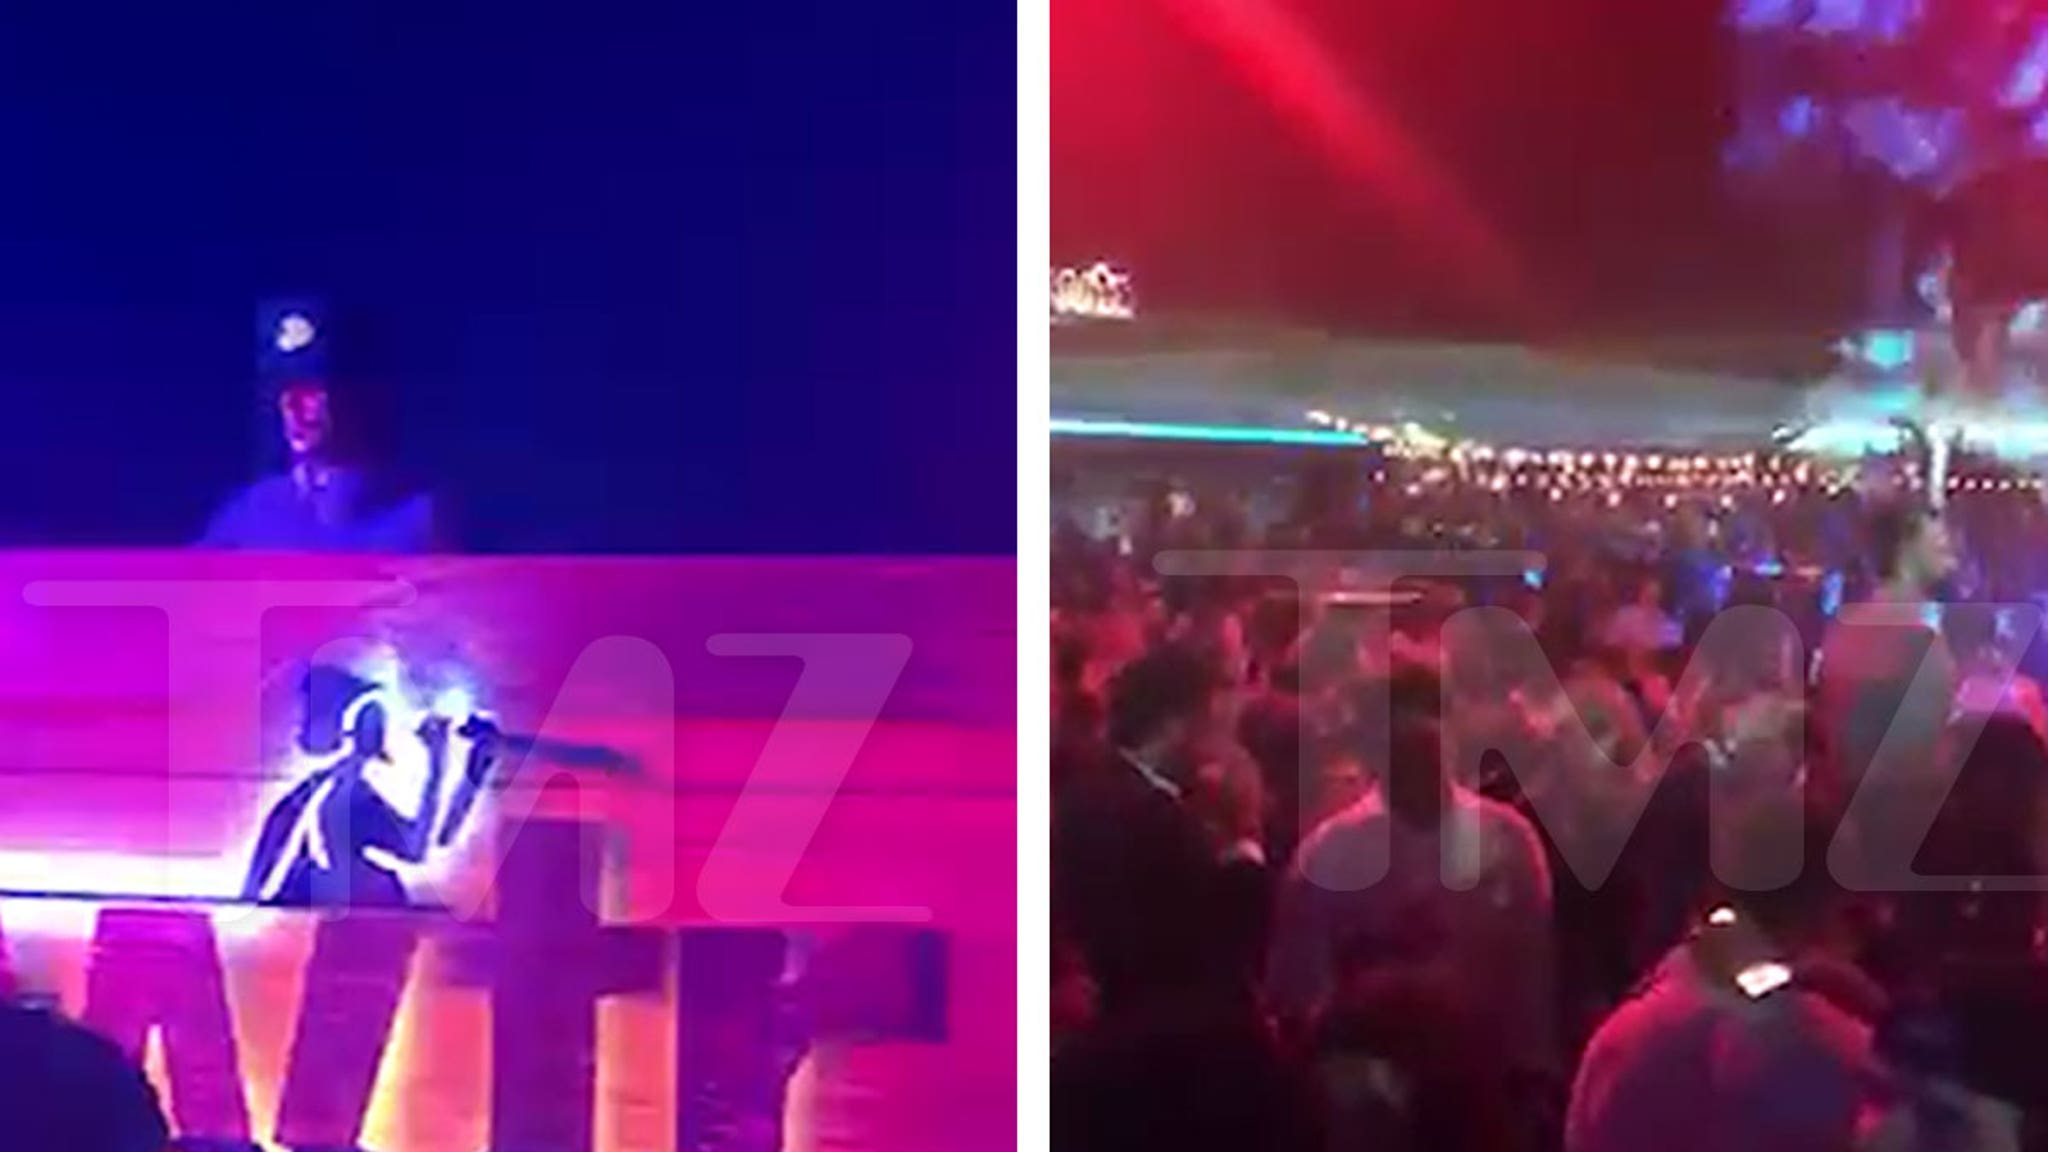 Diplo Plays Morgan Wallen Song 'Heartless' and the Crowd Loved It - TMZ